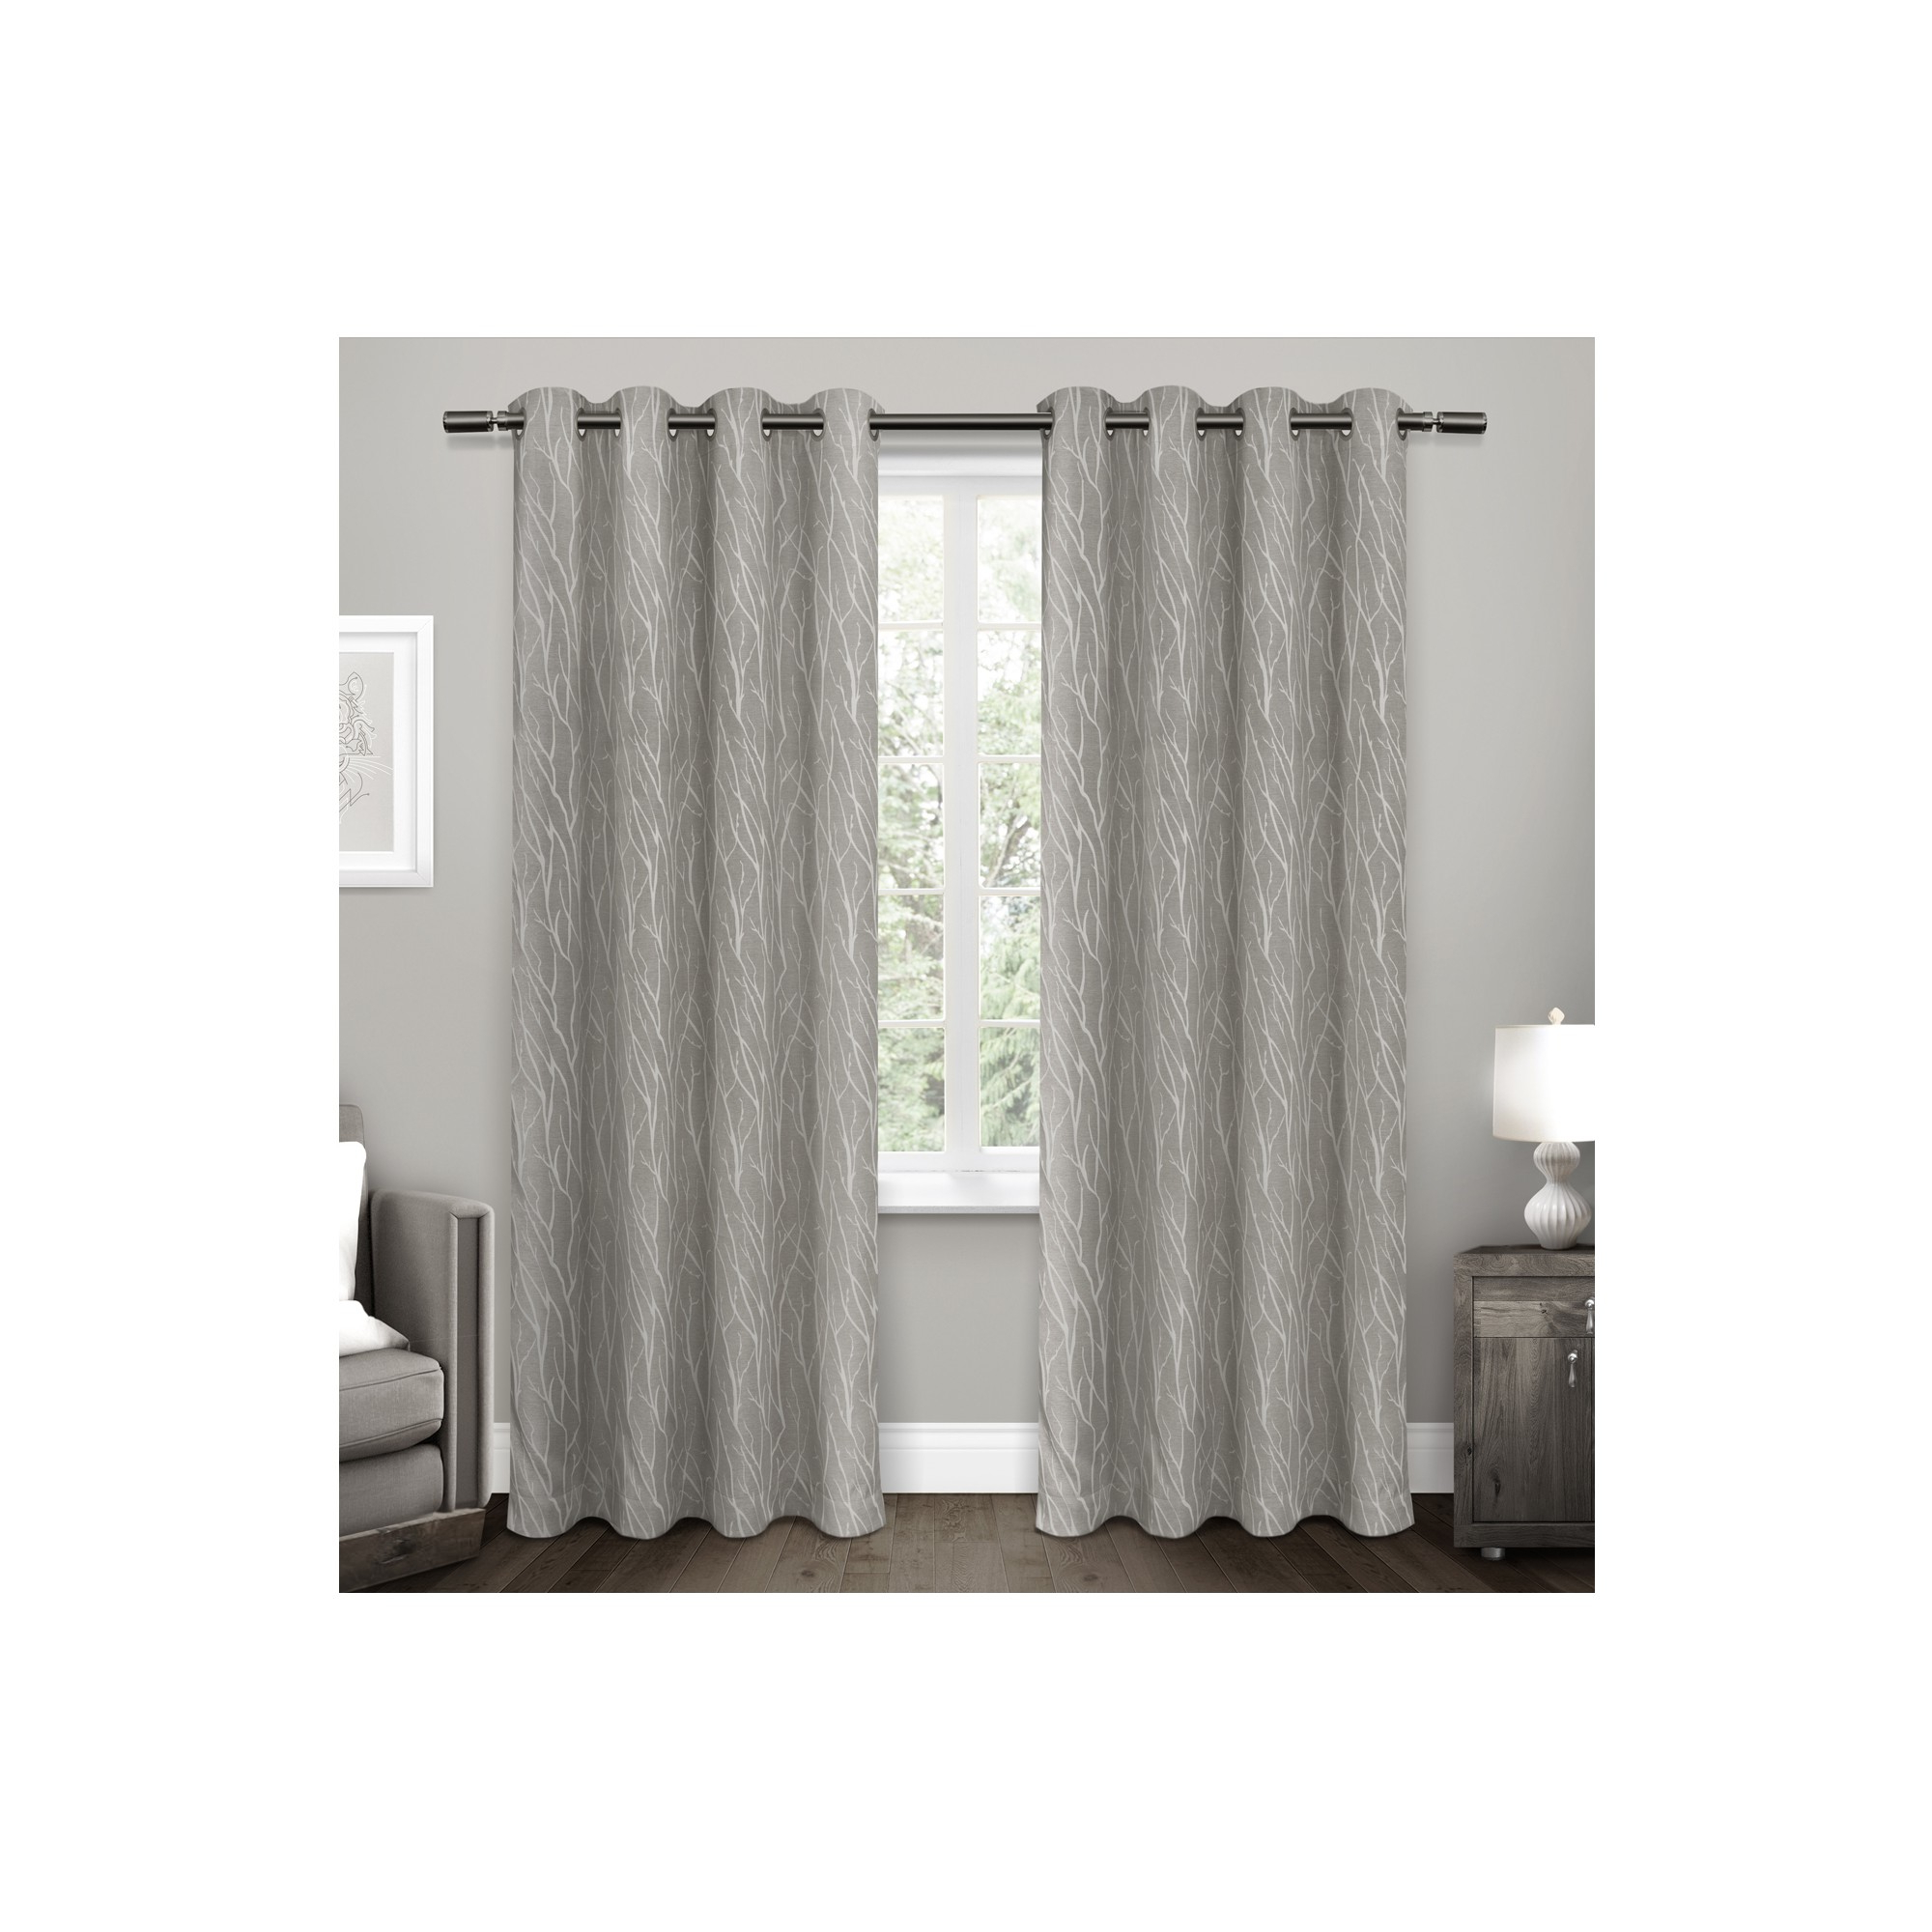 Forest Hill Woven Blackout Grommet Top Curtain Panel Pairs In Most Up To Date Forest Hill Woven Room Darkening Grommet Top Window Curtain (View 14 of 20)